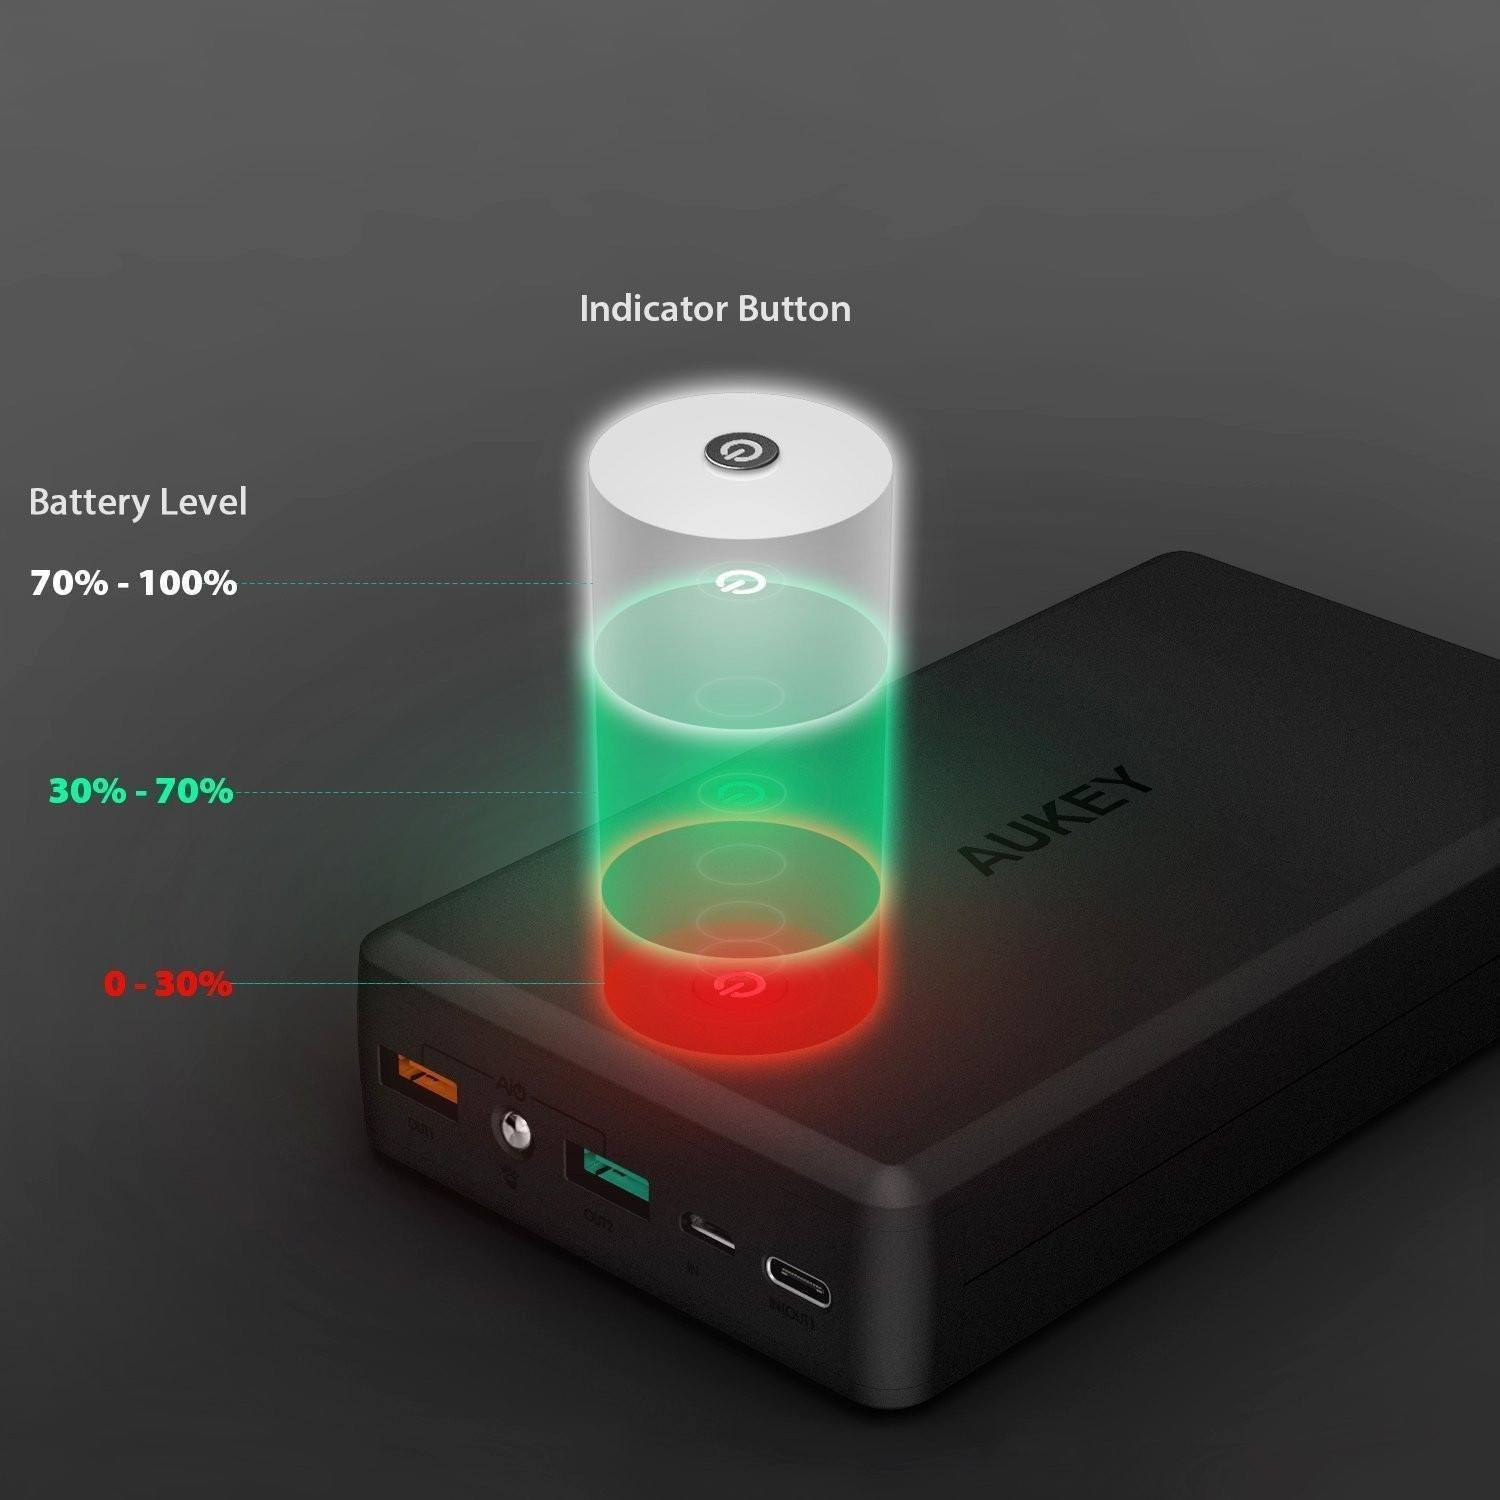 Powerbank - AUKEY 30000mAh Portable Charger With Quick Charge 3.0 & USB C Port For IPhone, Samsung Galaxy Note 7, Lumia 950/950 XL, Nexus 6P/5X And More